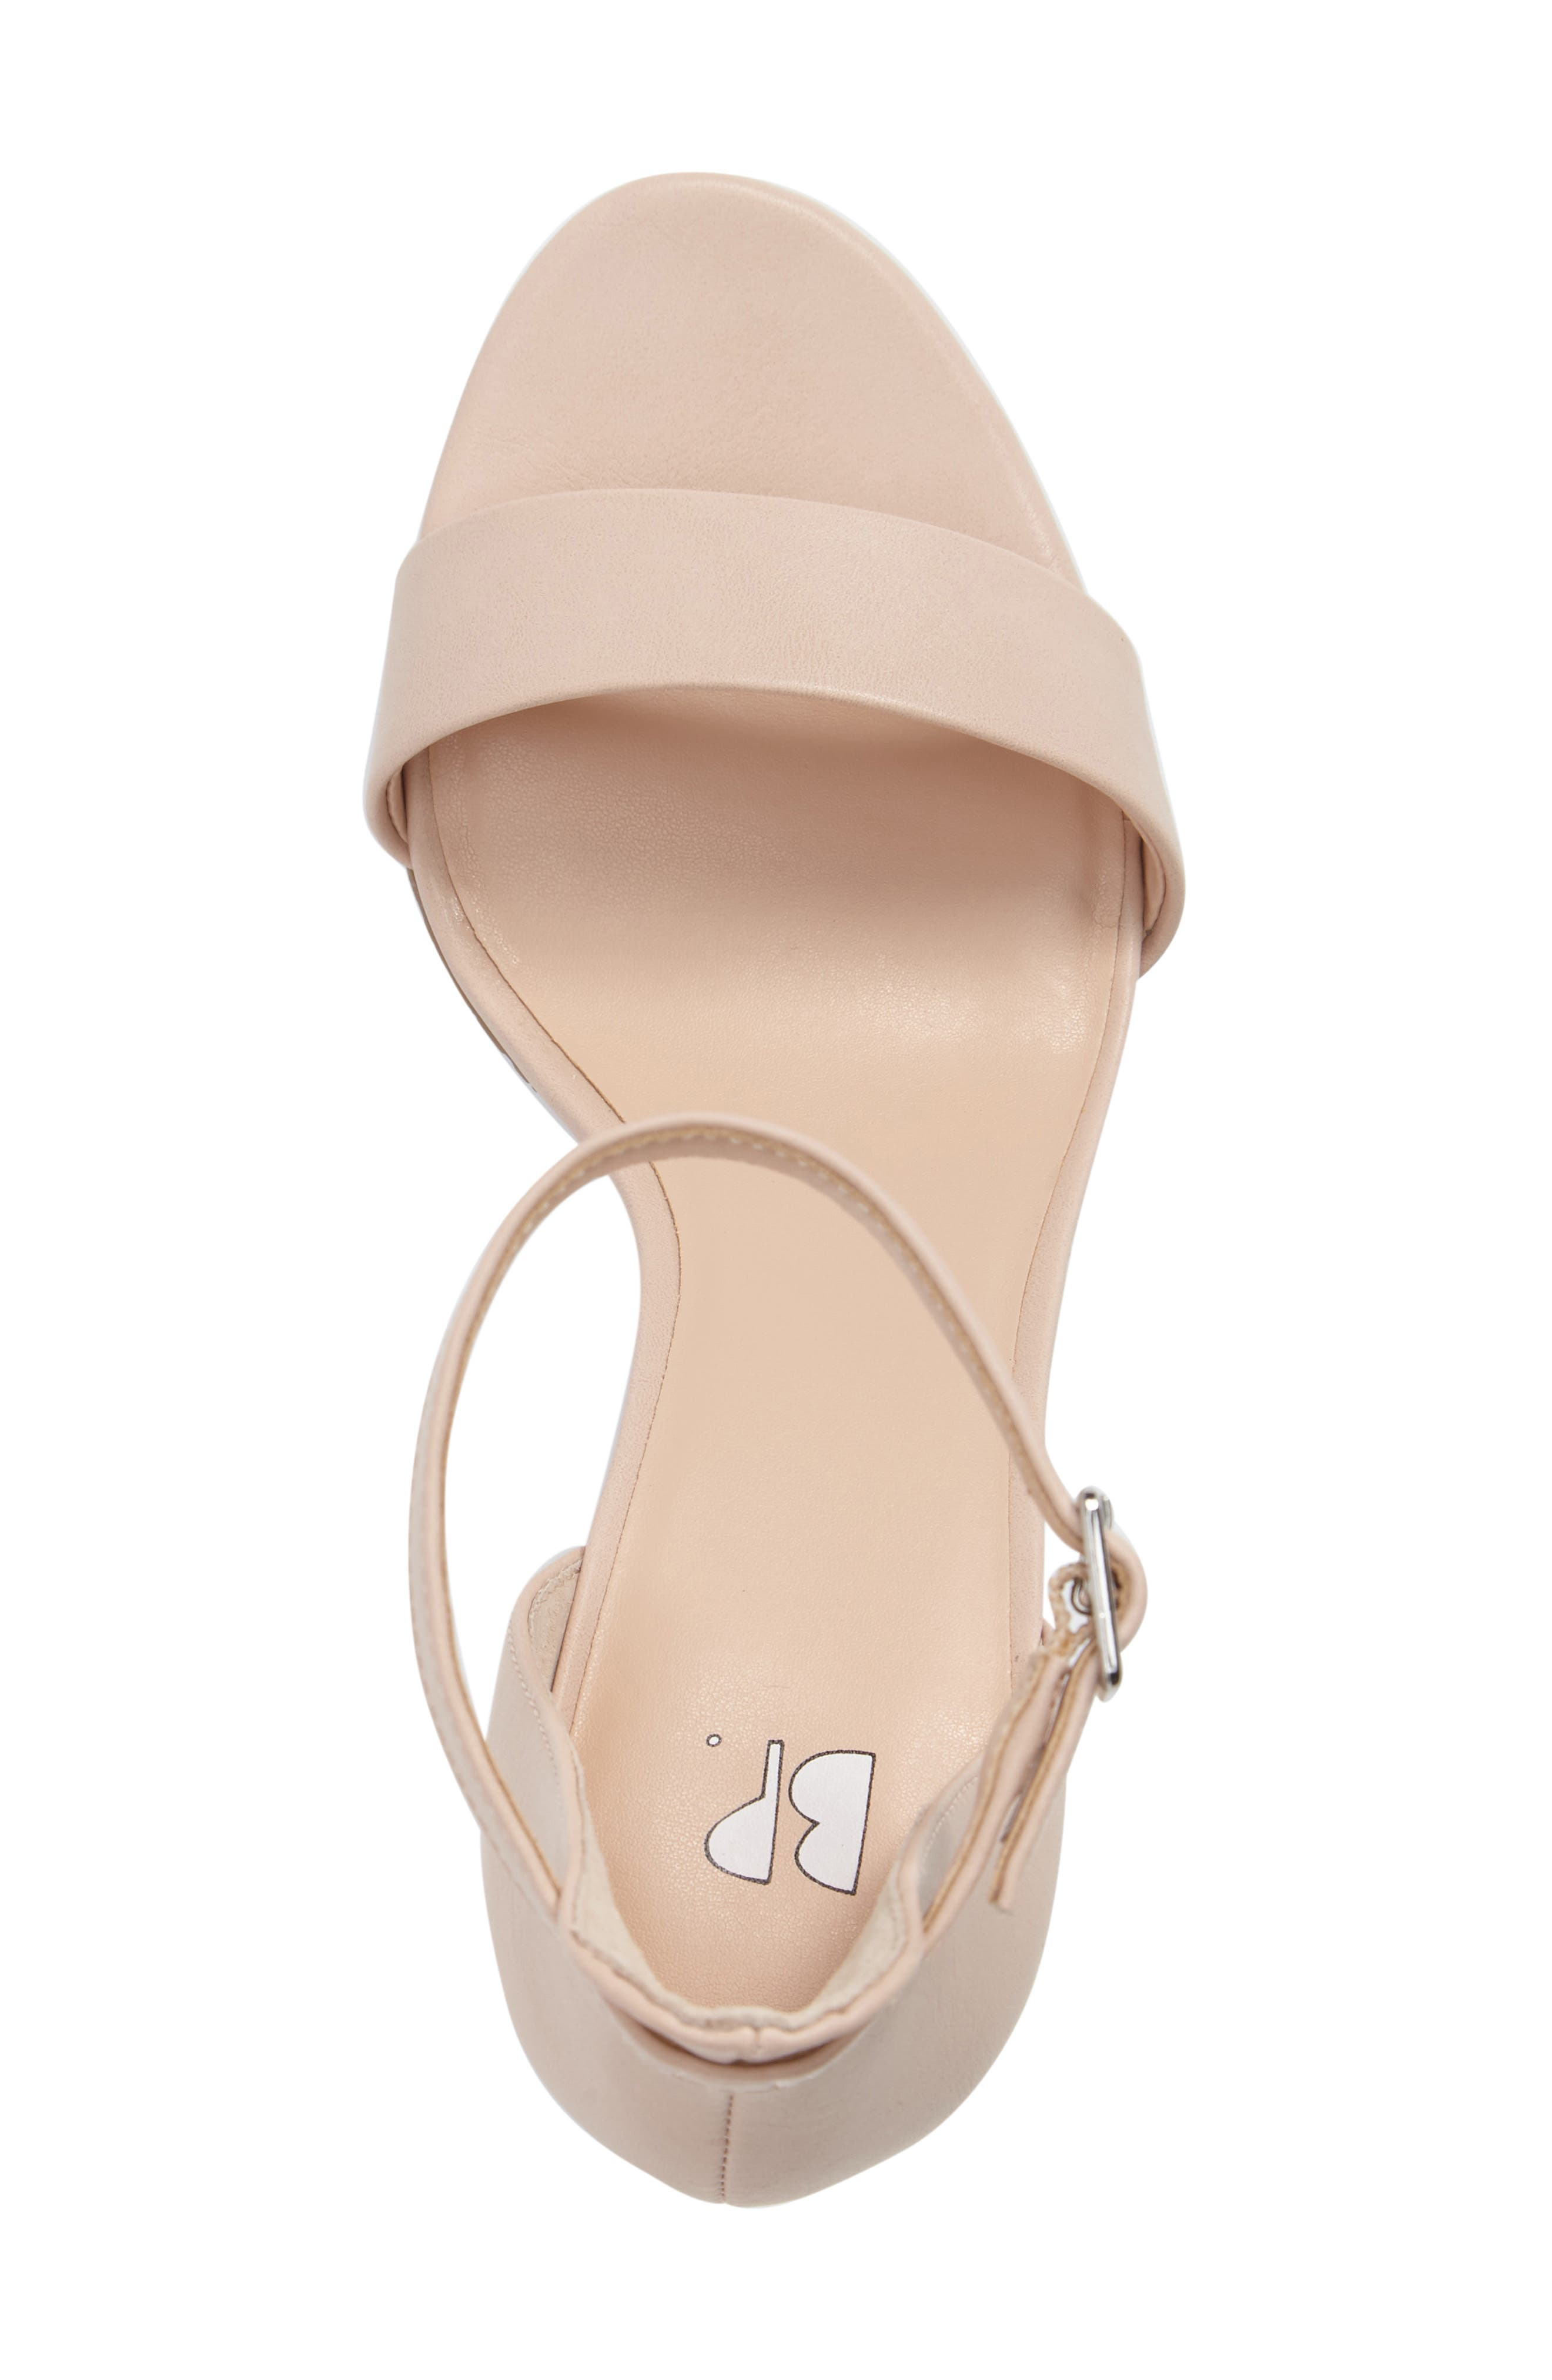 'Luminate' Open Toe Dress Sandal,                             Alternate thumbnail 5, color,                             Blush Faux Leather